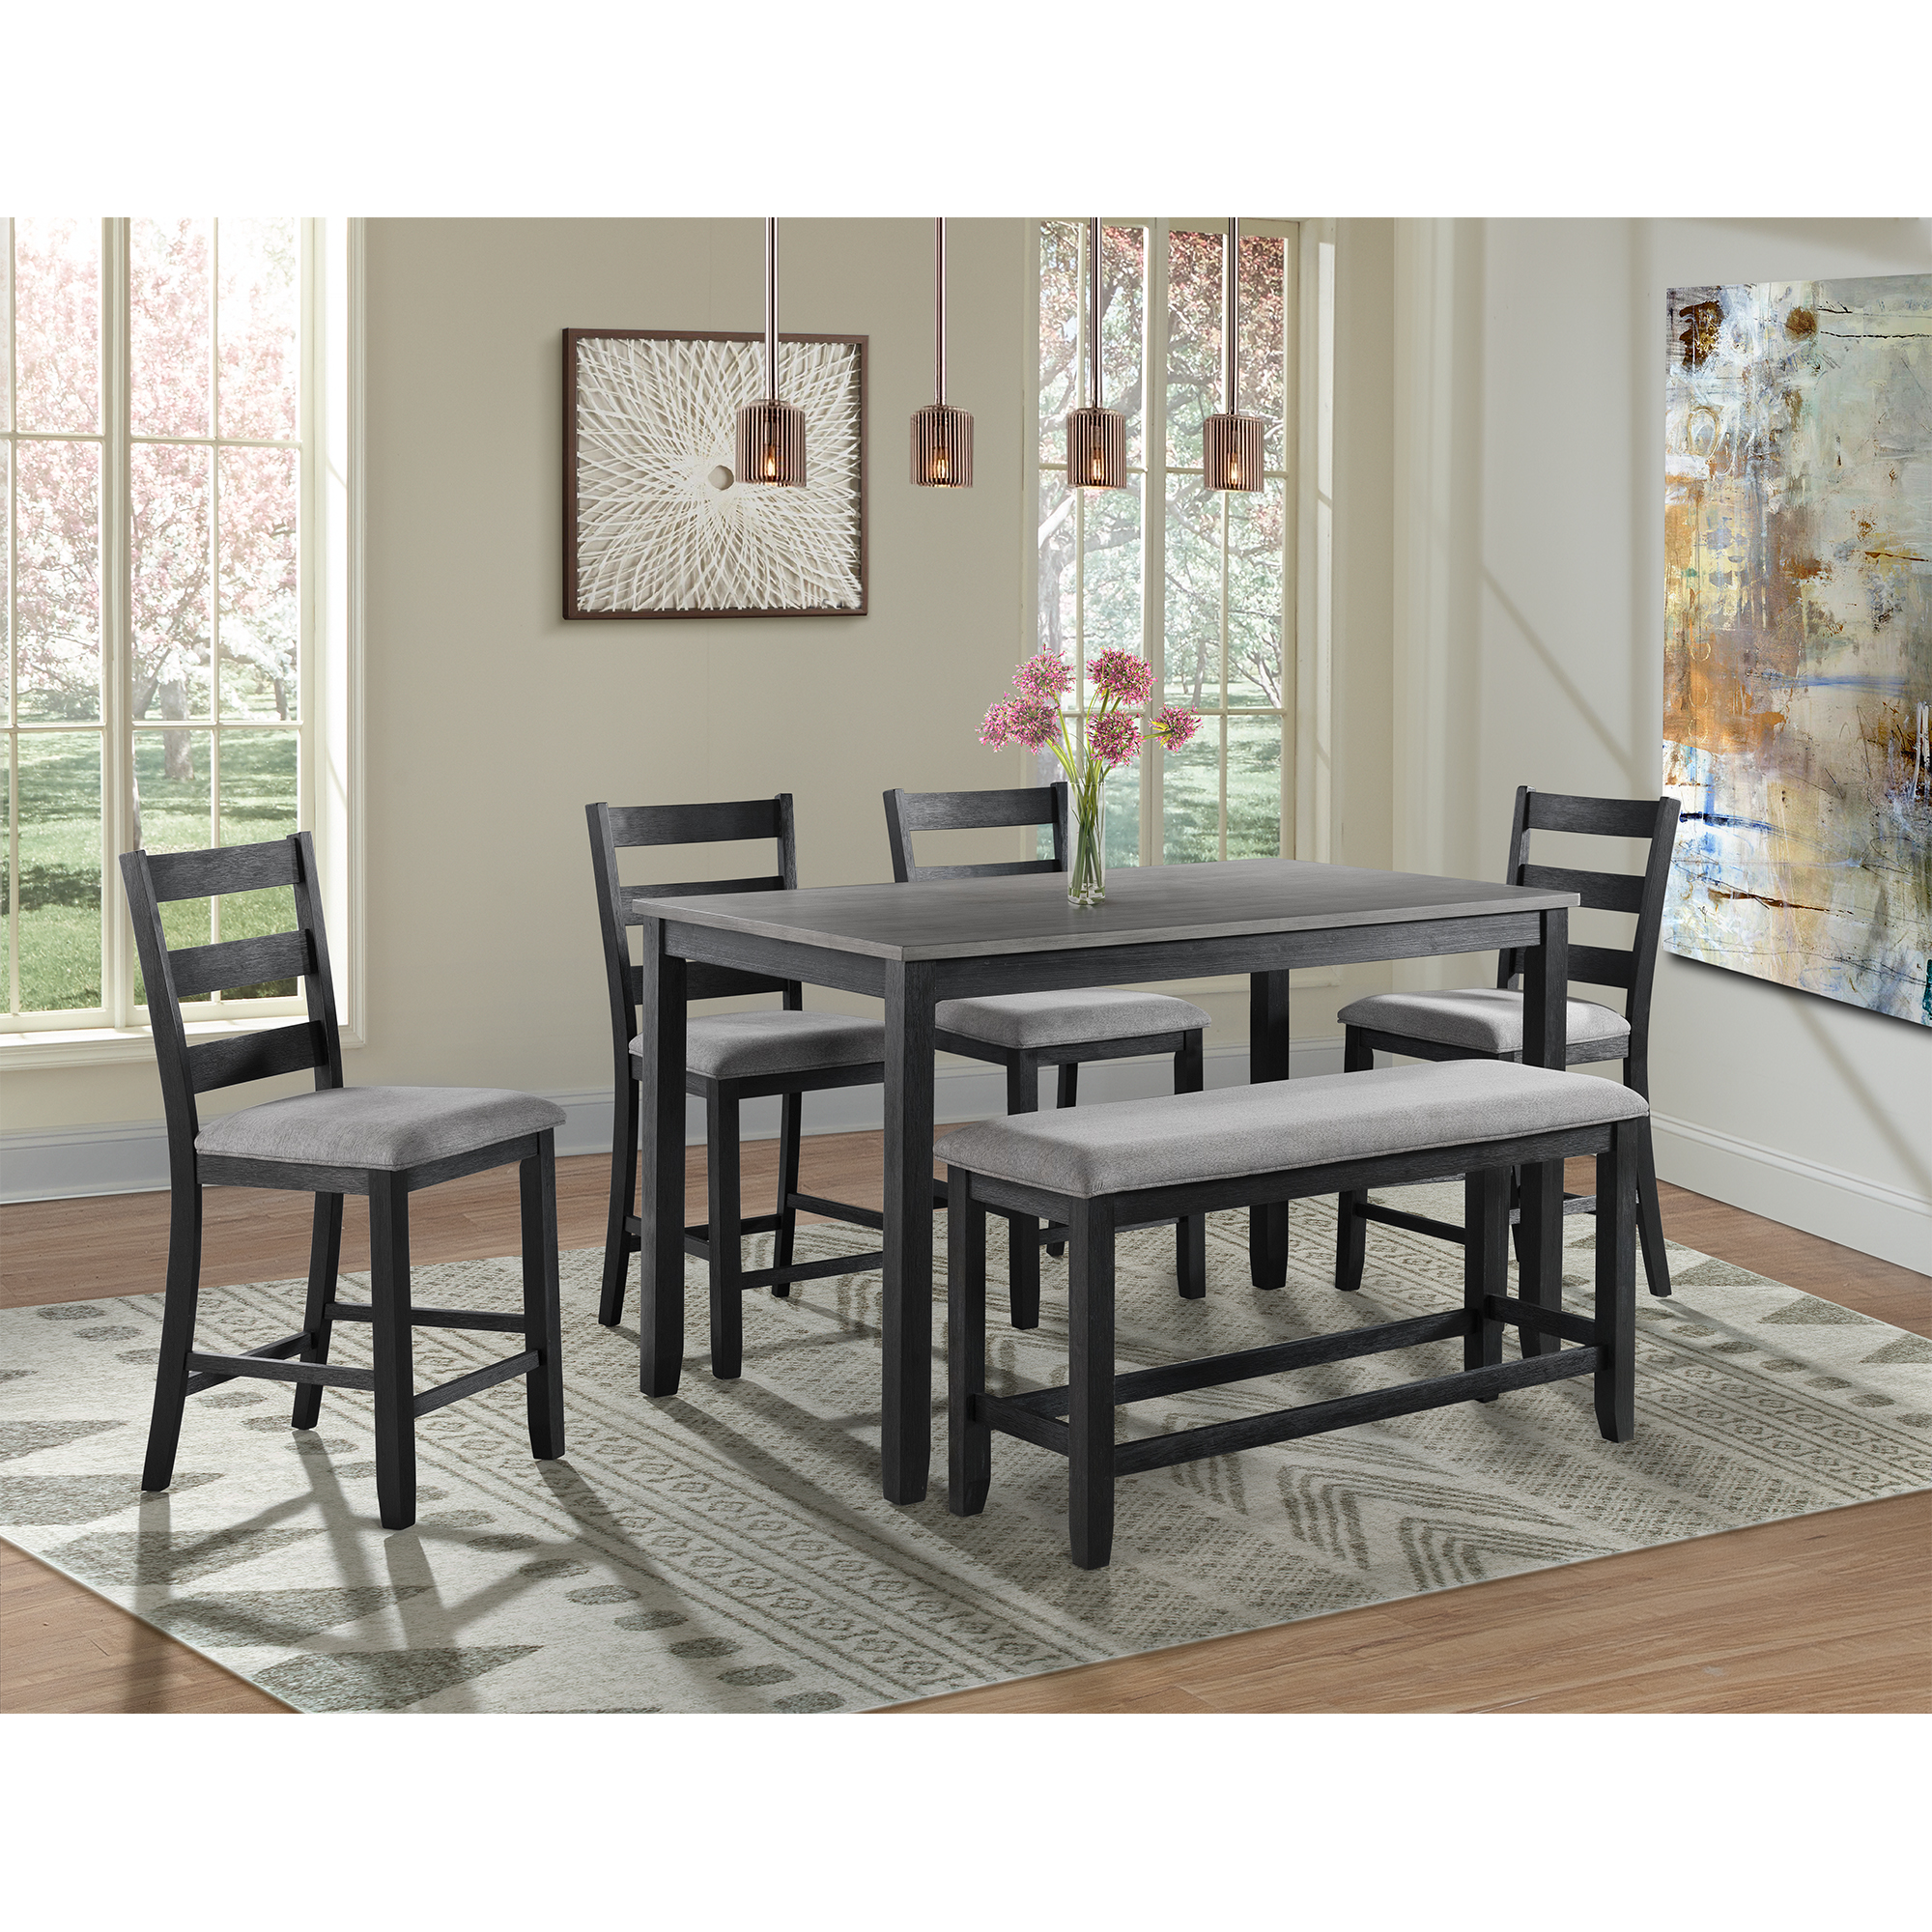 Picket House Kona Counter Height Dining Set Table Four Chairs Bench